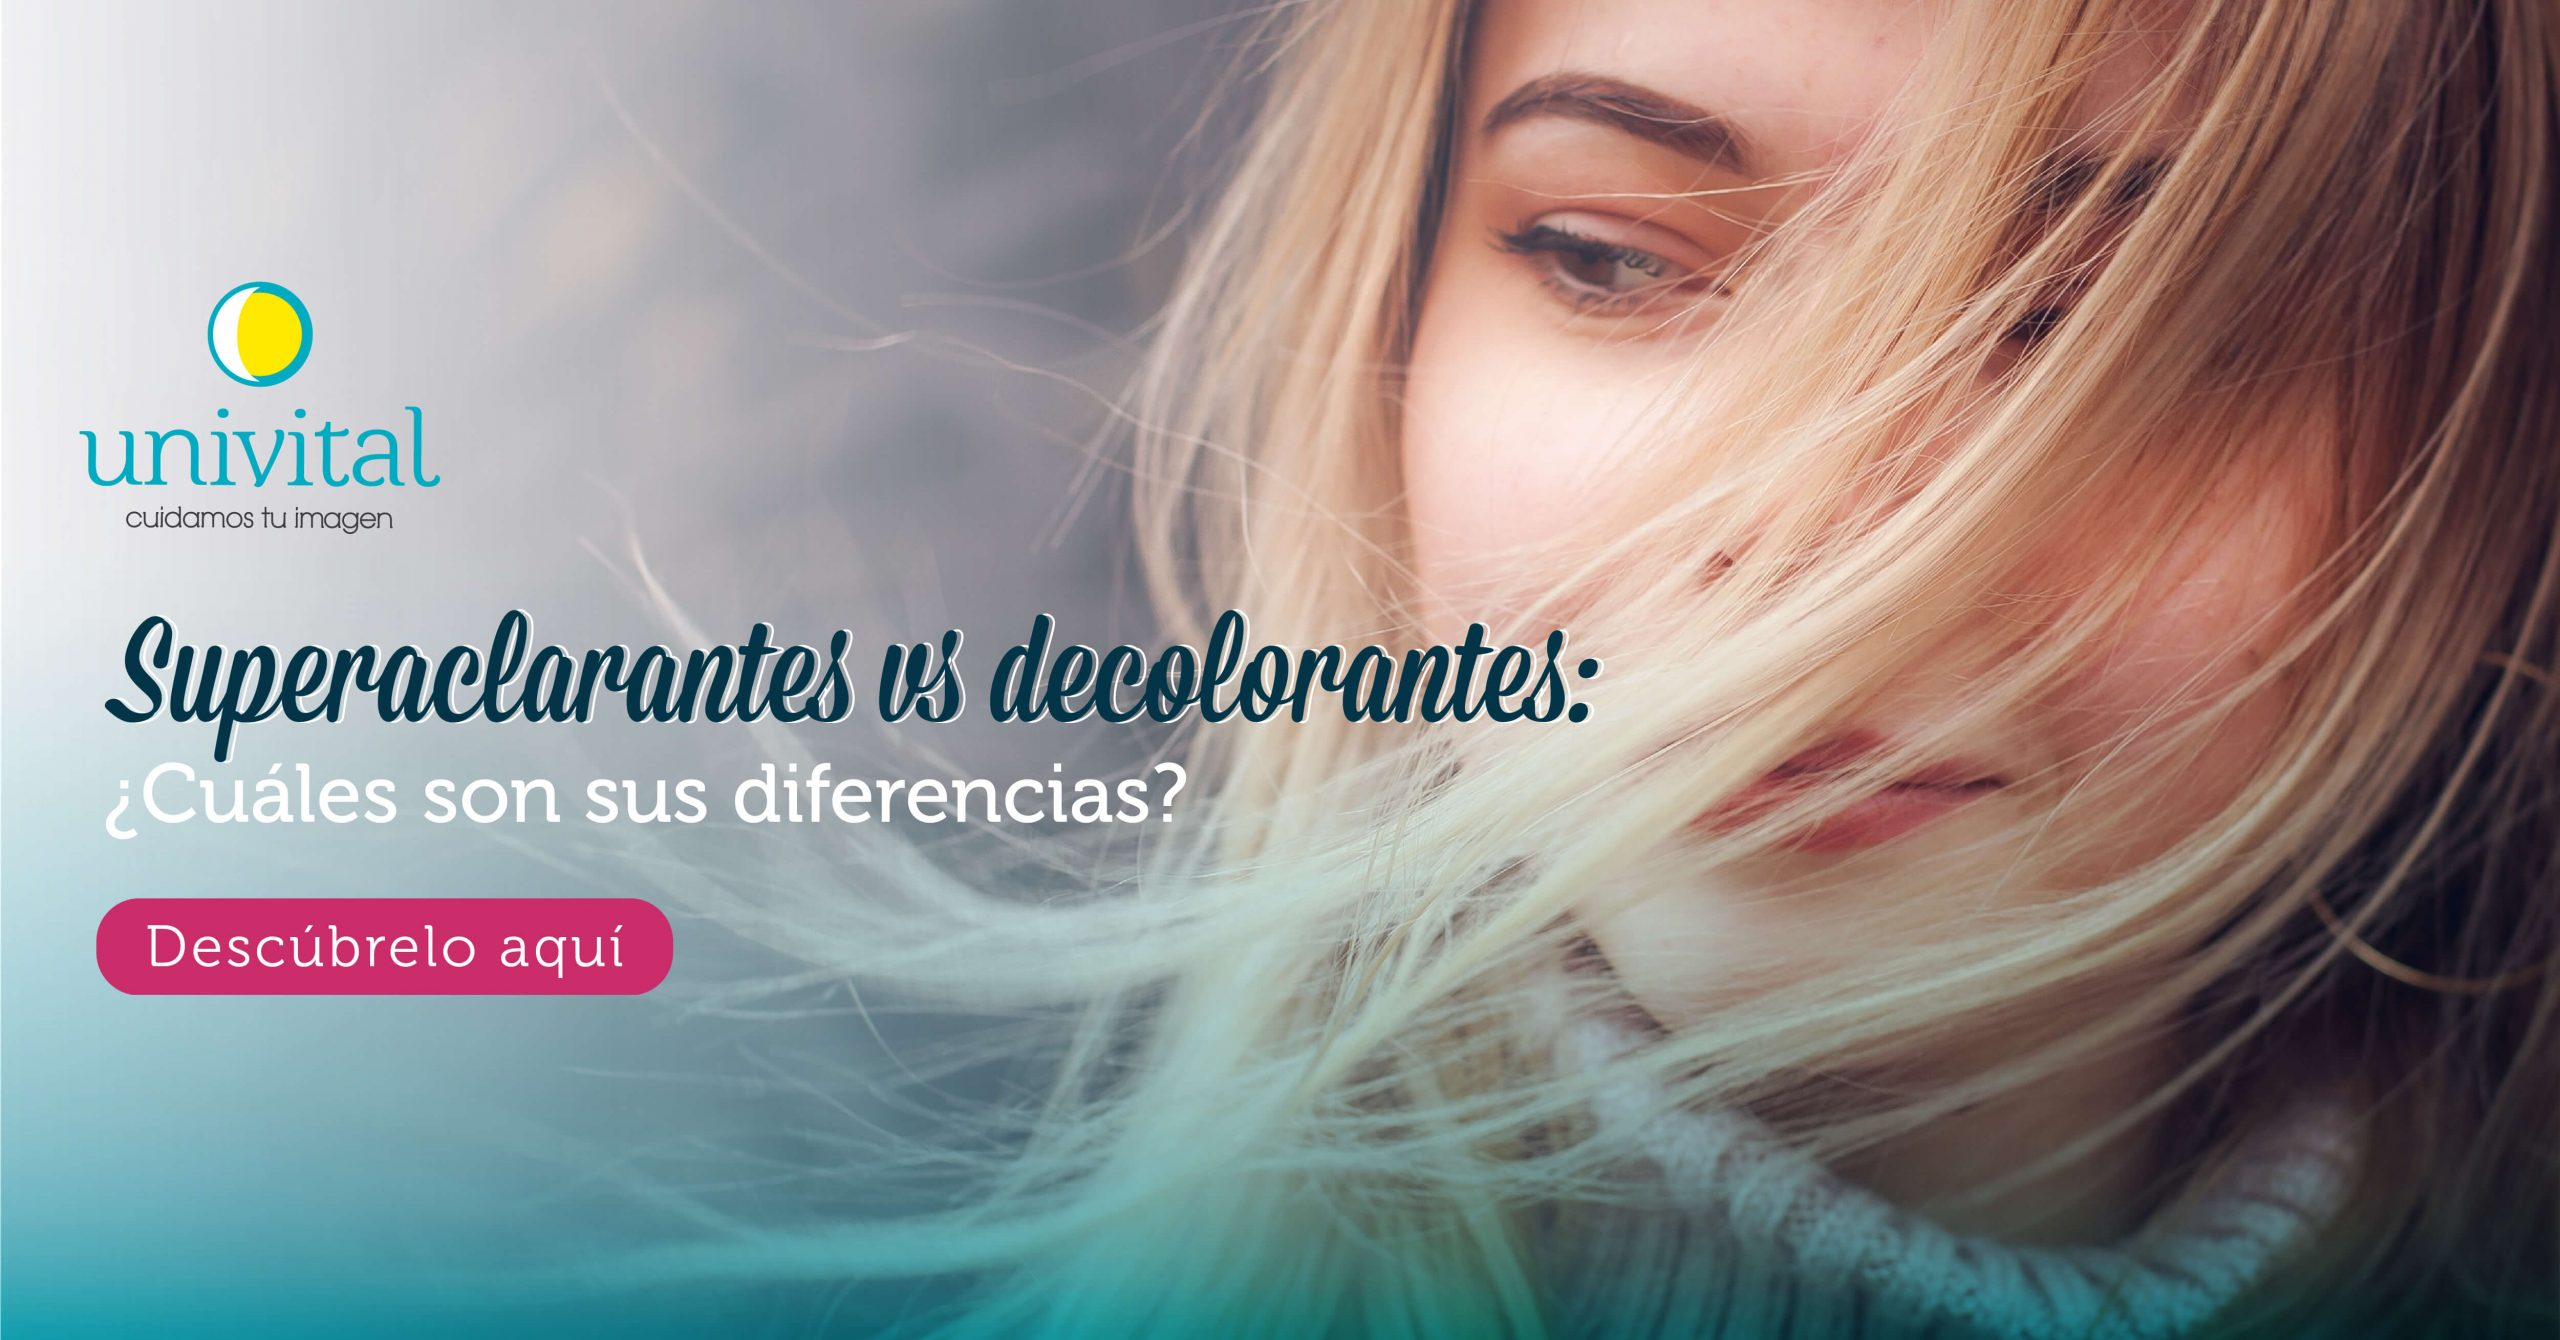 Superaclarantes vs decolorantes: ¿Cuáles son sus diferencias?